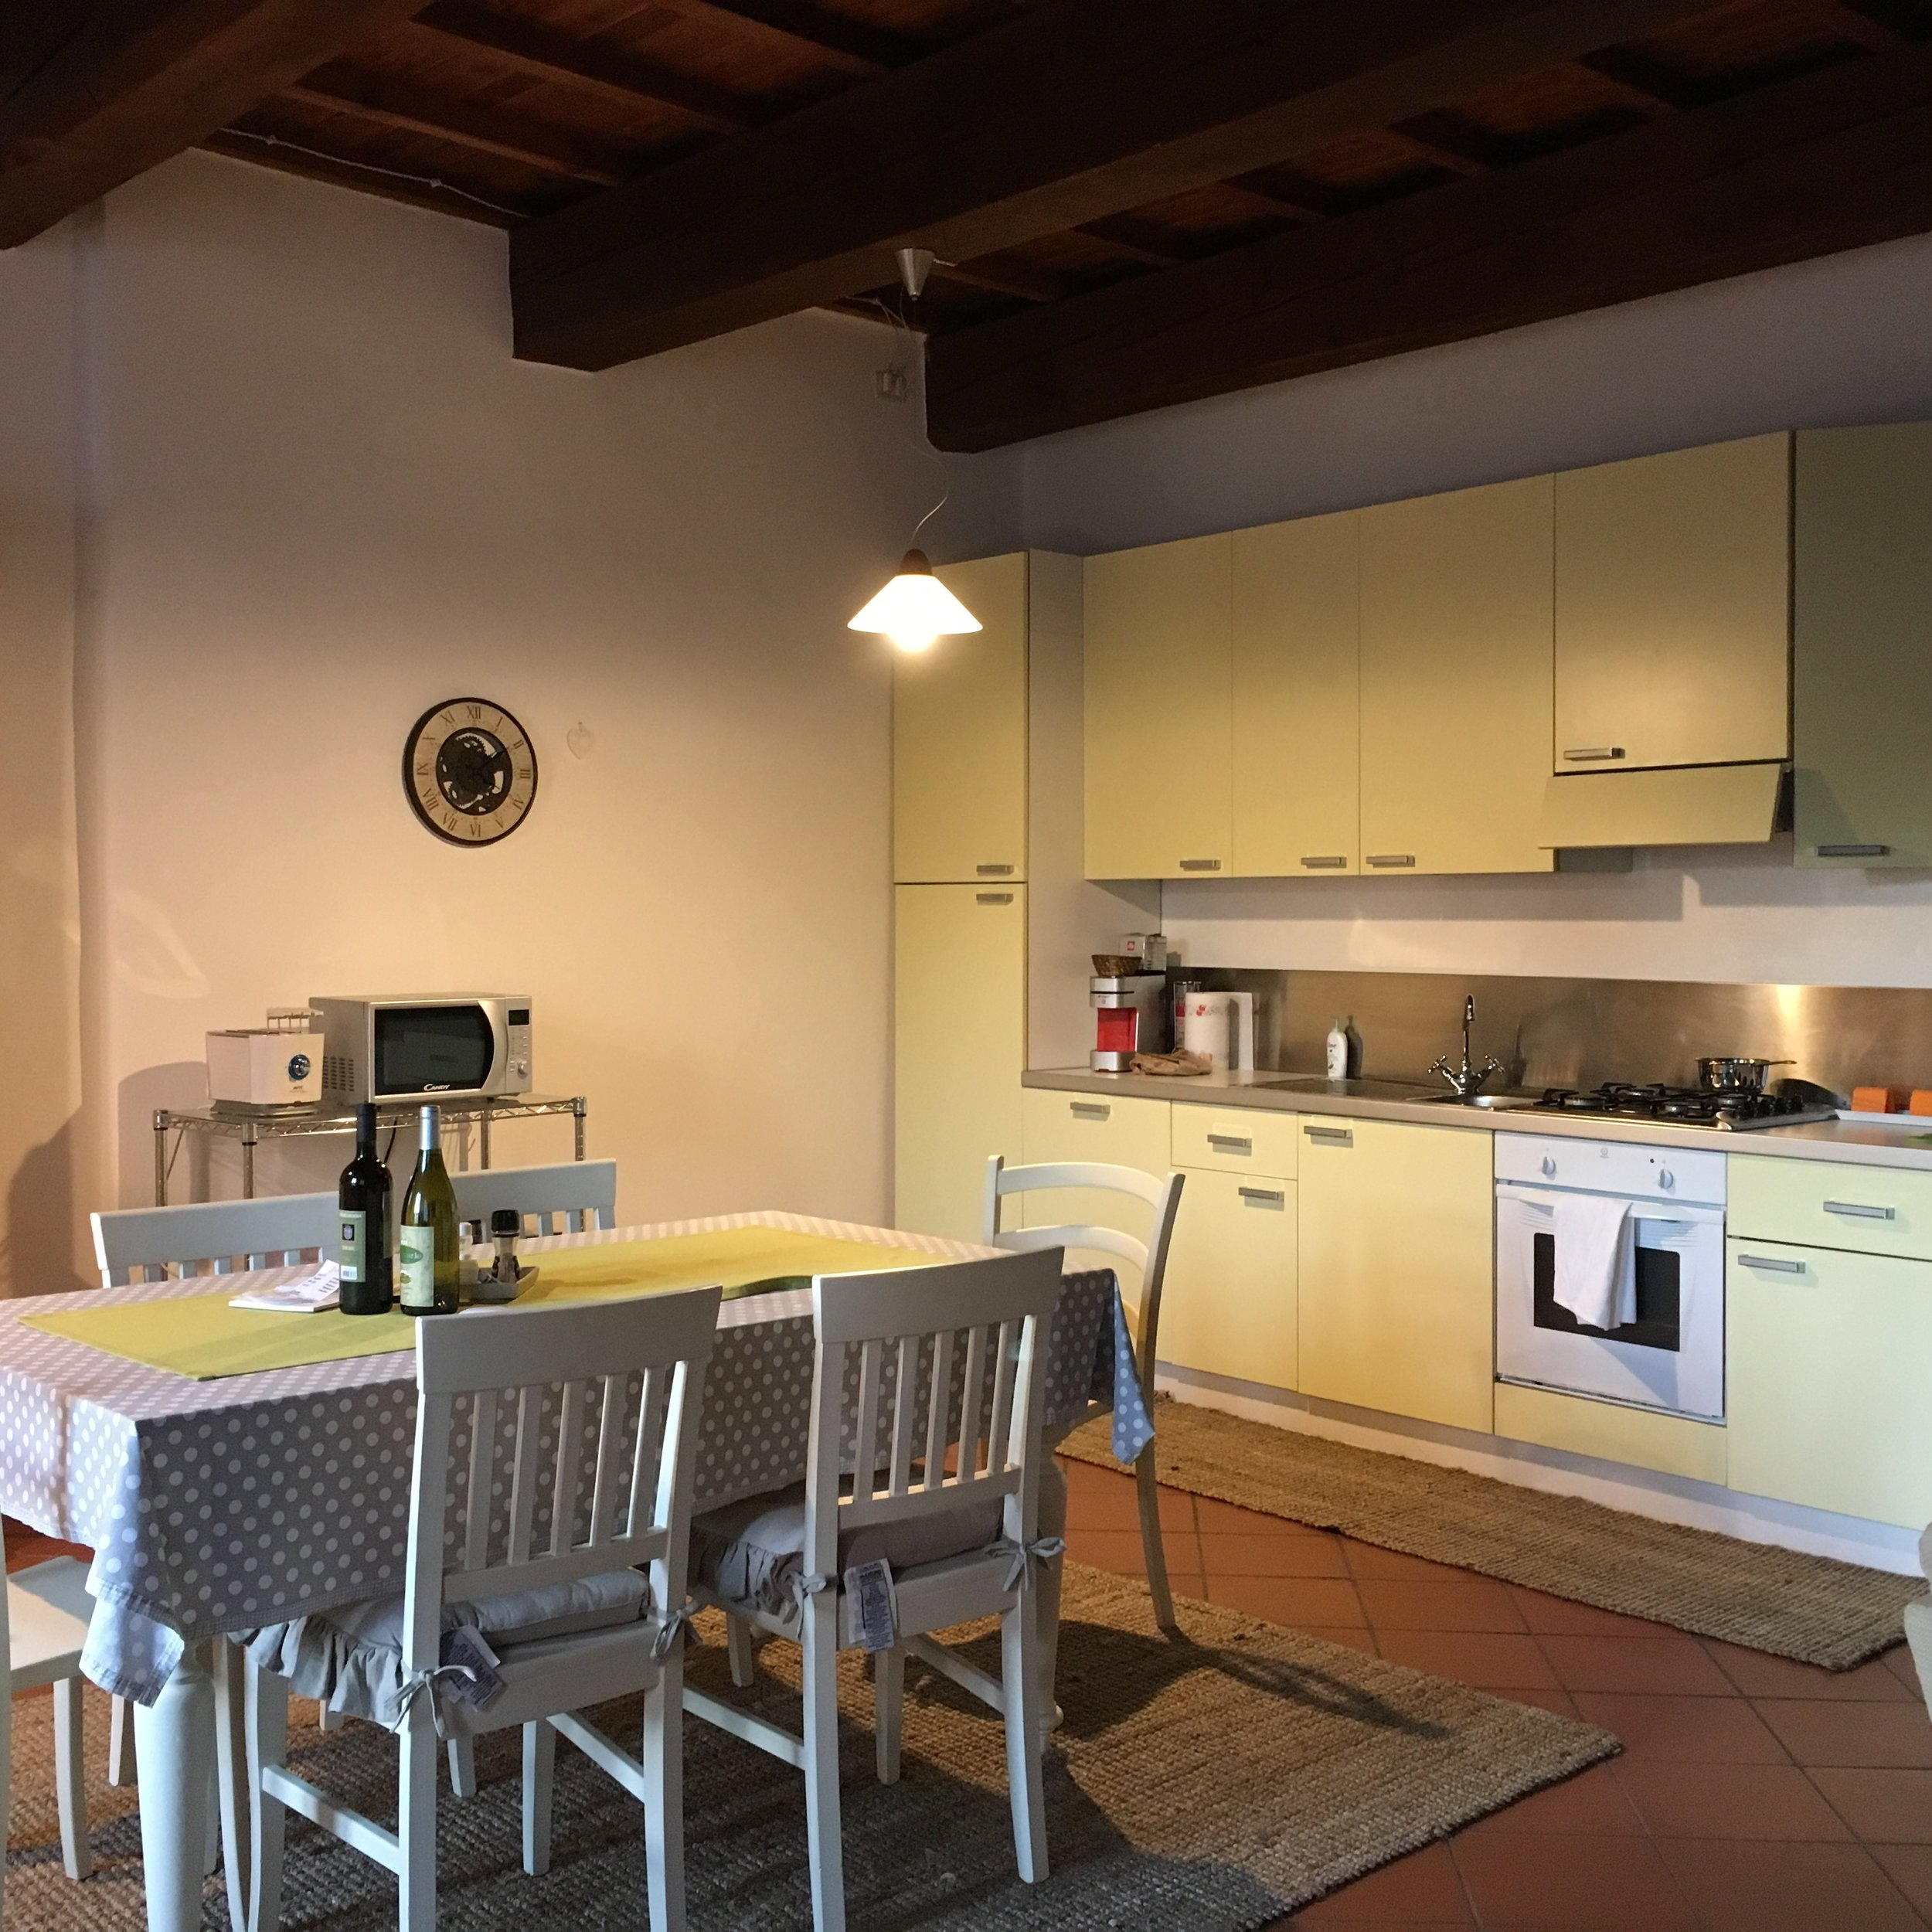 The galley kitchen is well-equipped and the cabinets stocked with cookware and dishes.